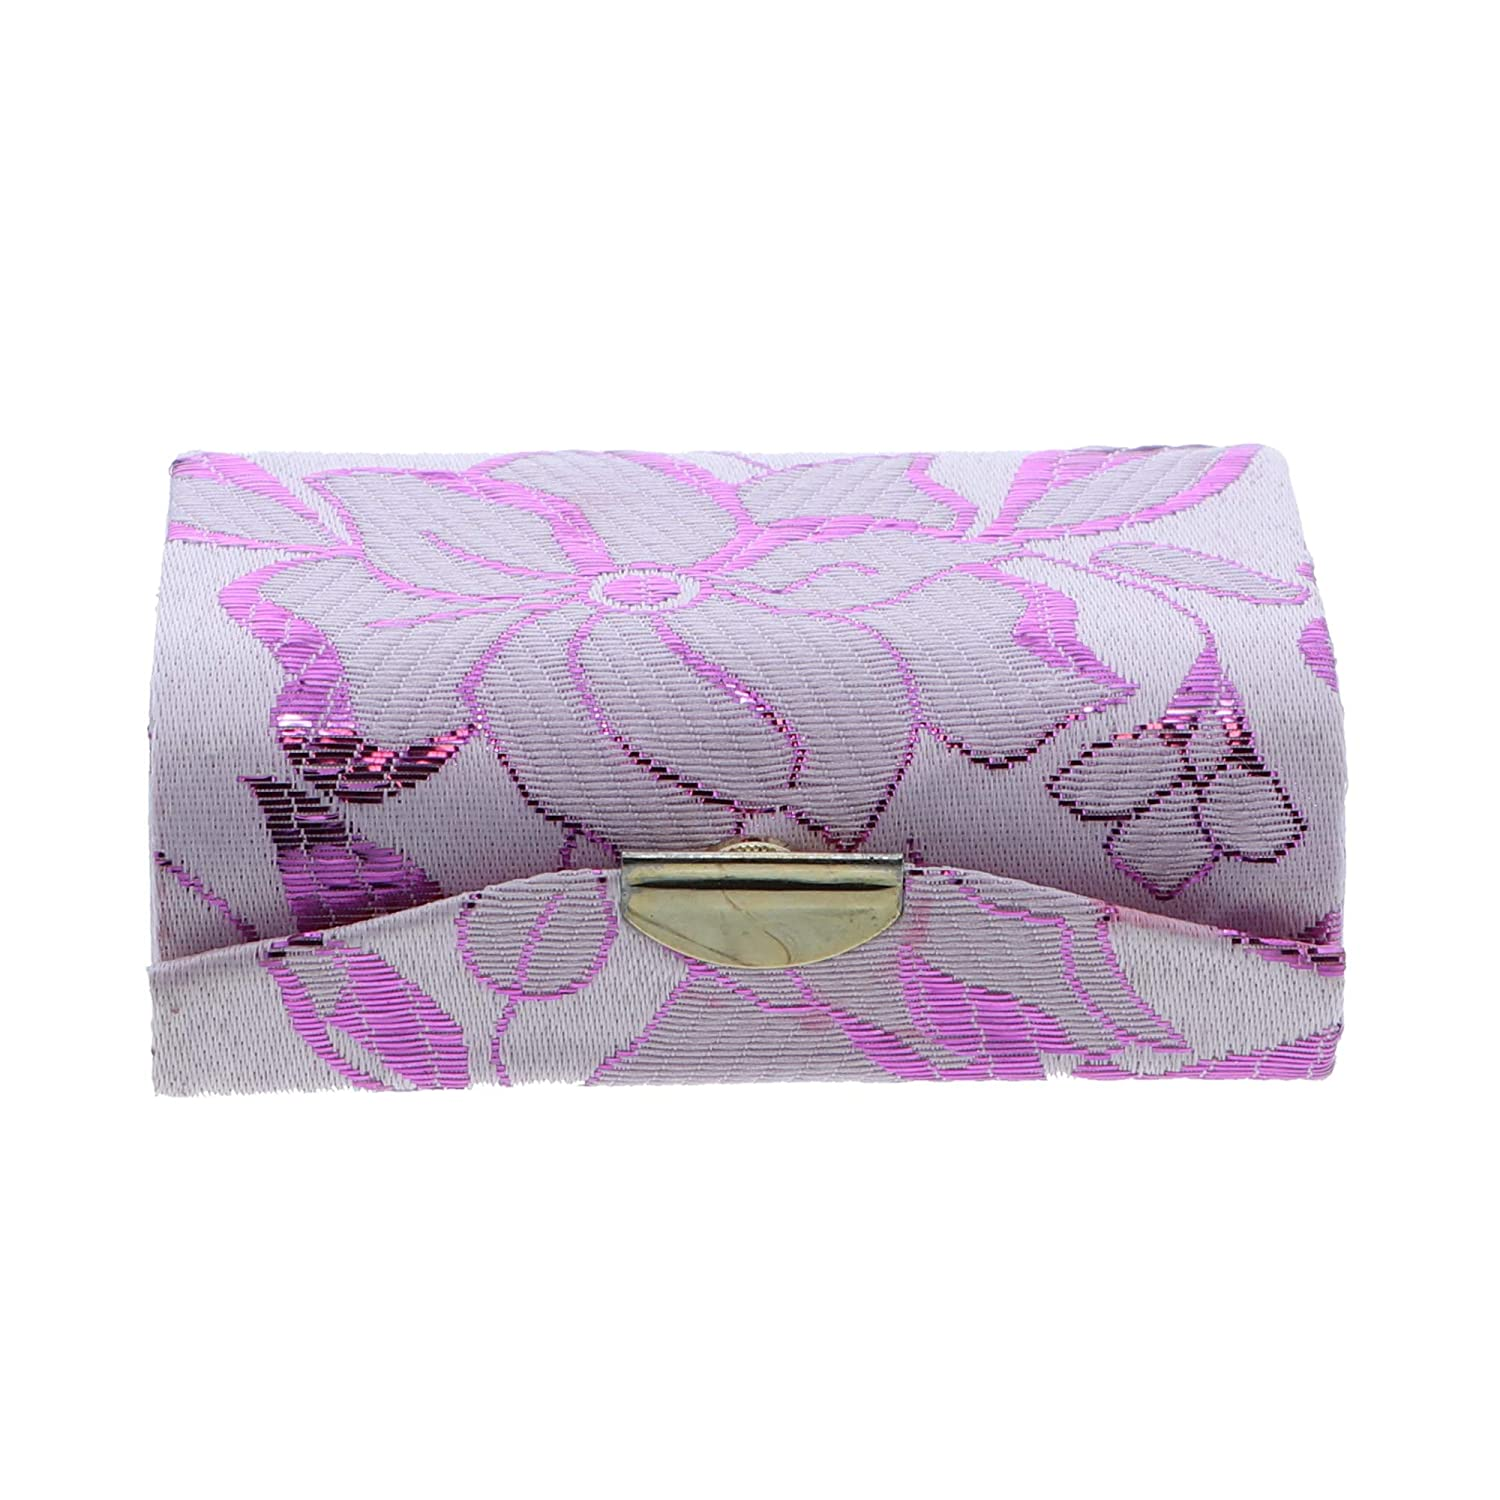 Elegant Double Lipstick Case with Mirror for Purse - Lavender